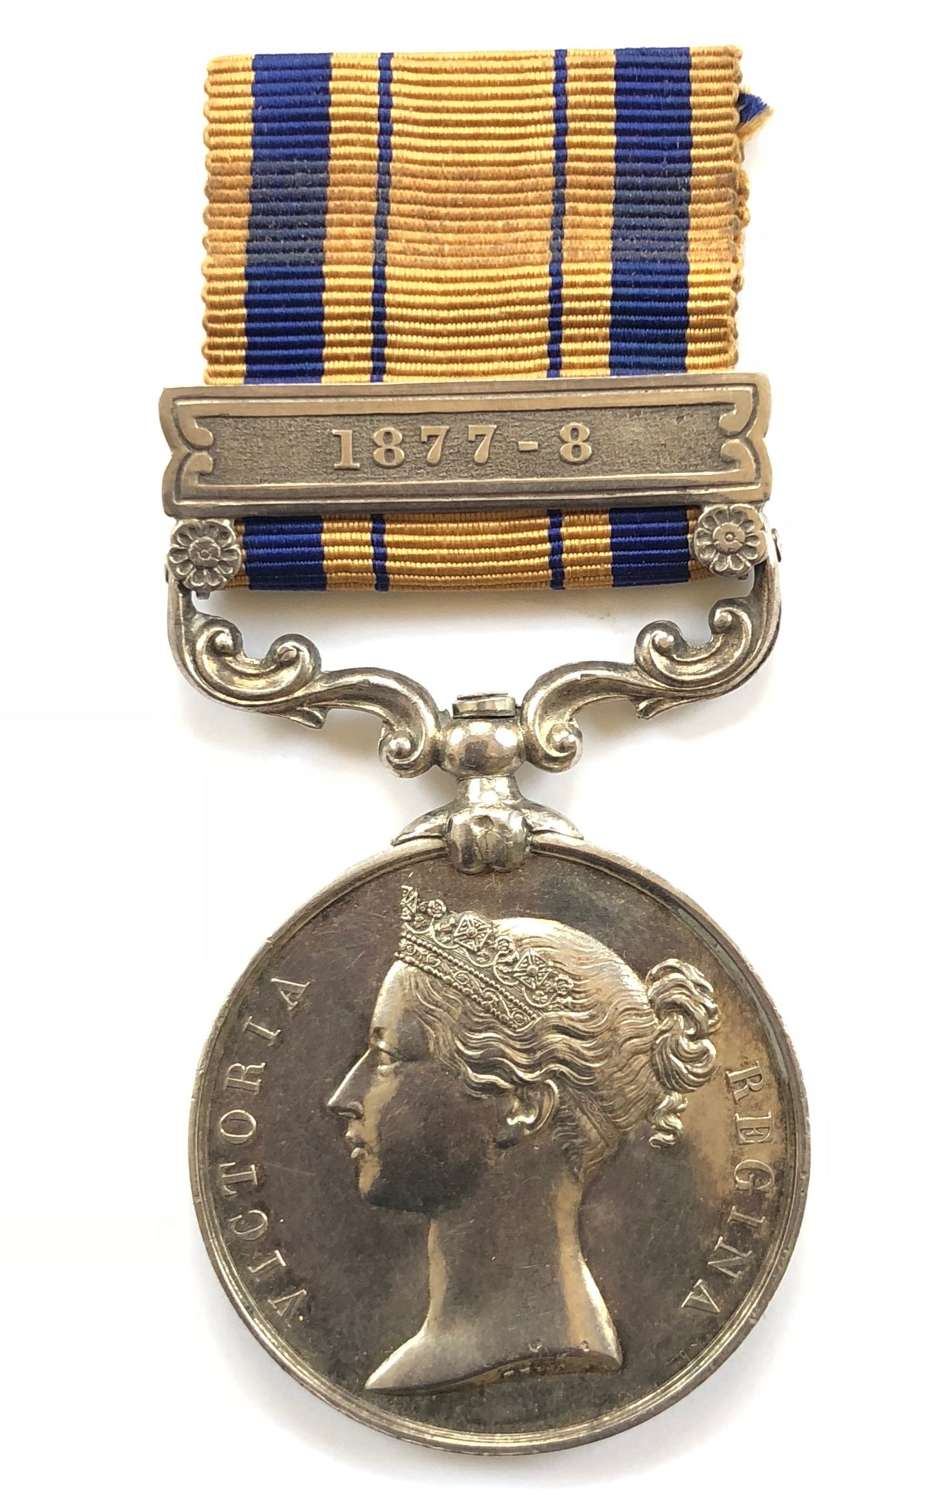 90th Foot Zulu War South Africa Medal, clasp '1877-8'